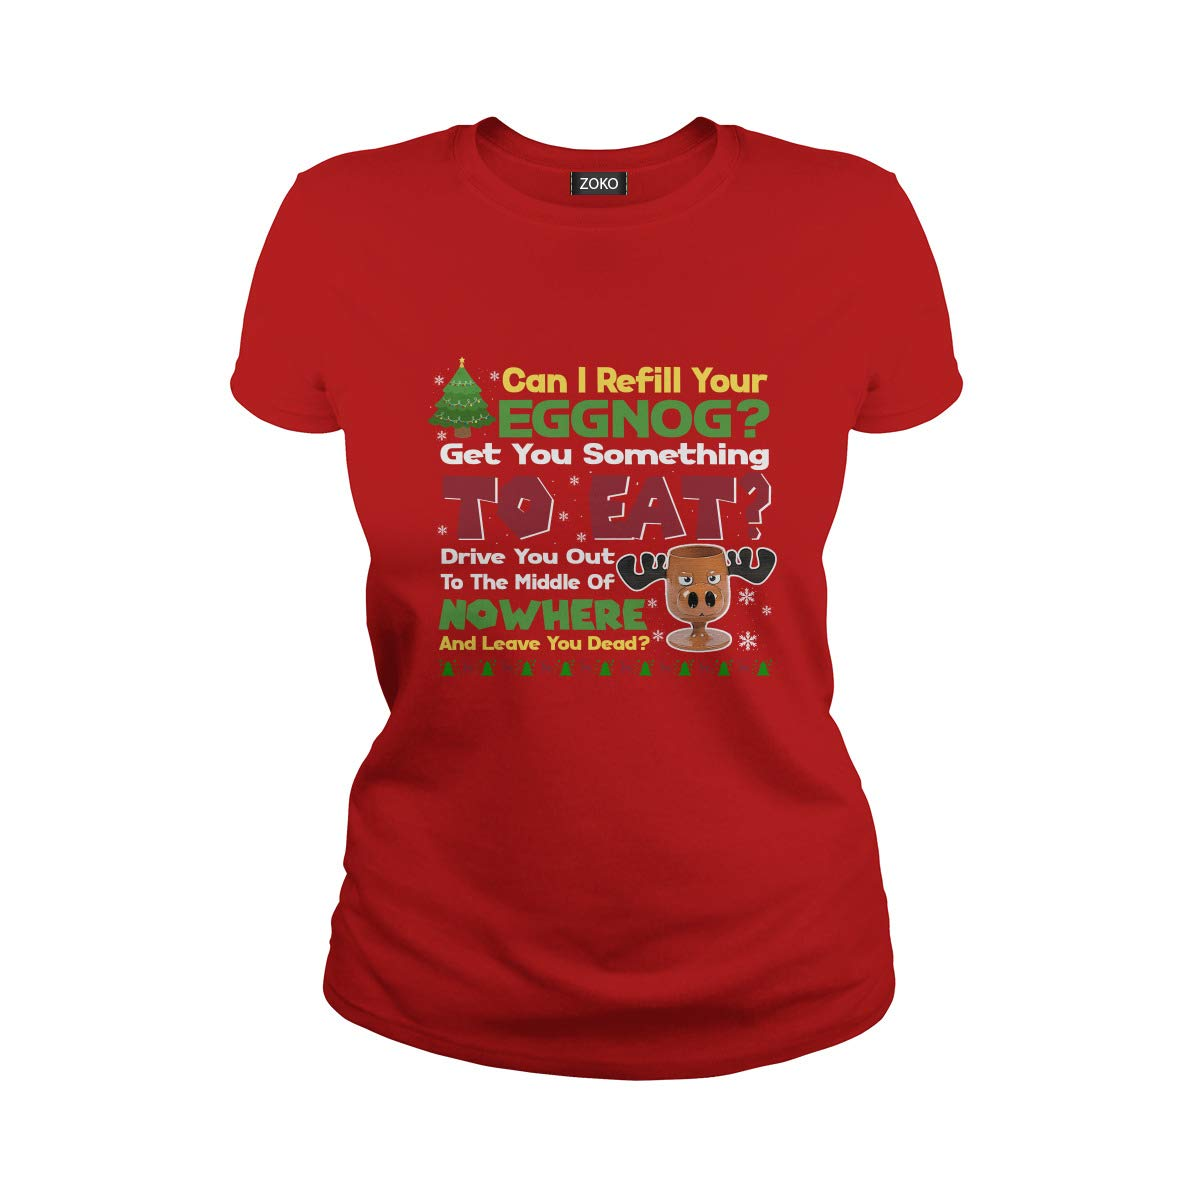 Zoko Apparel Get You Some Thing to Eat T-Shirt